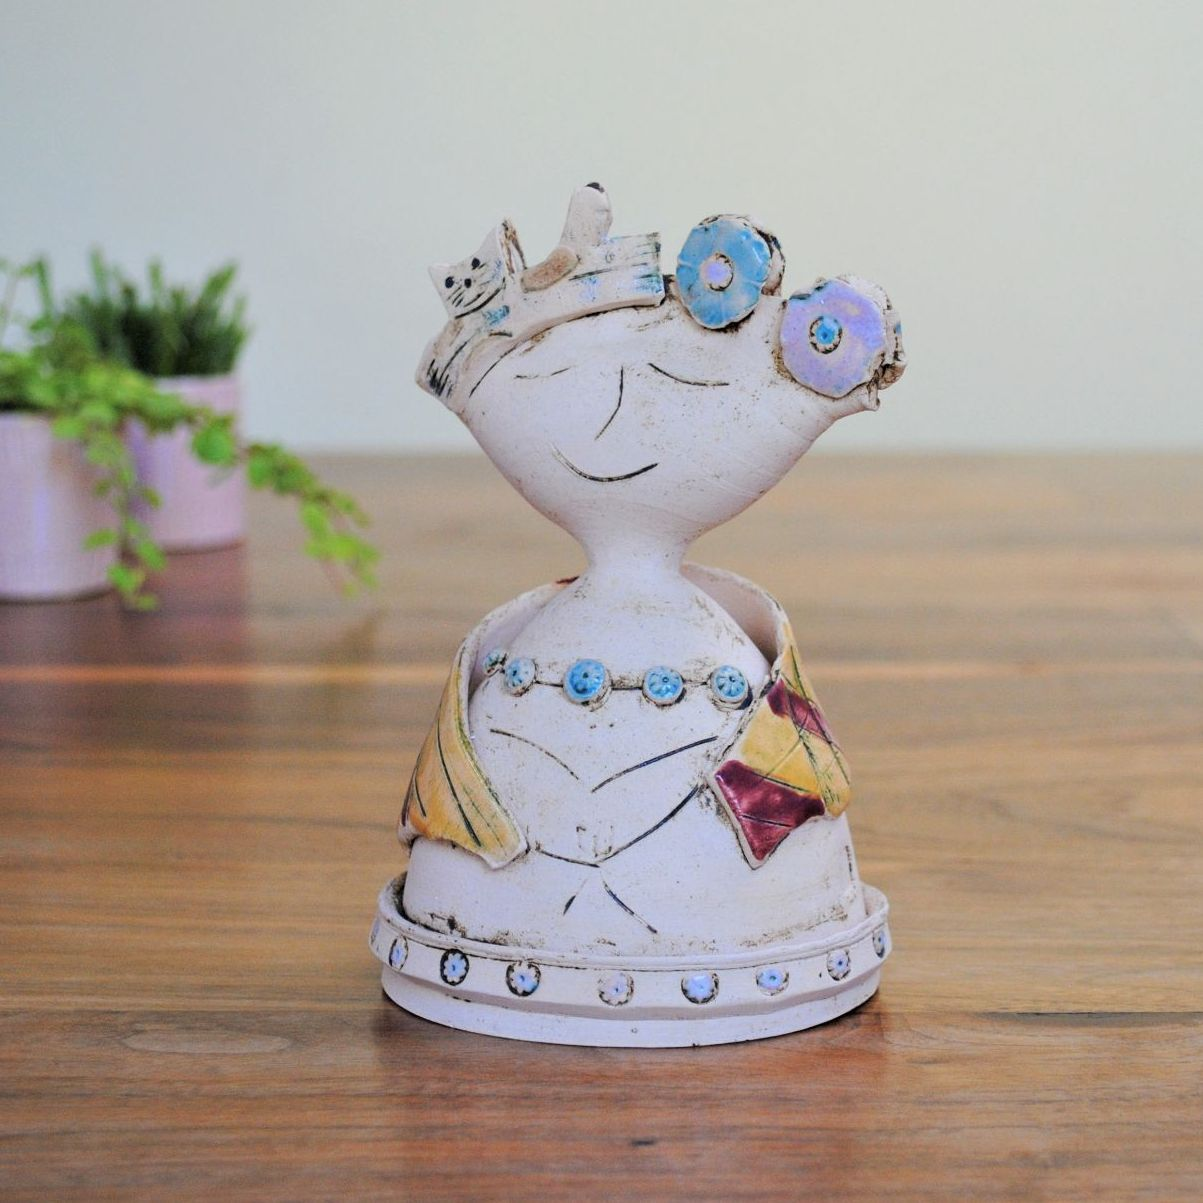 Ceramic sculpture lady with cat and flowers.